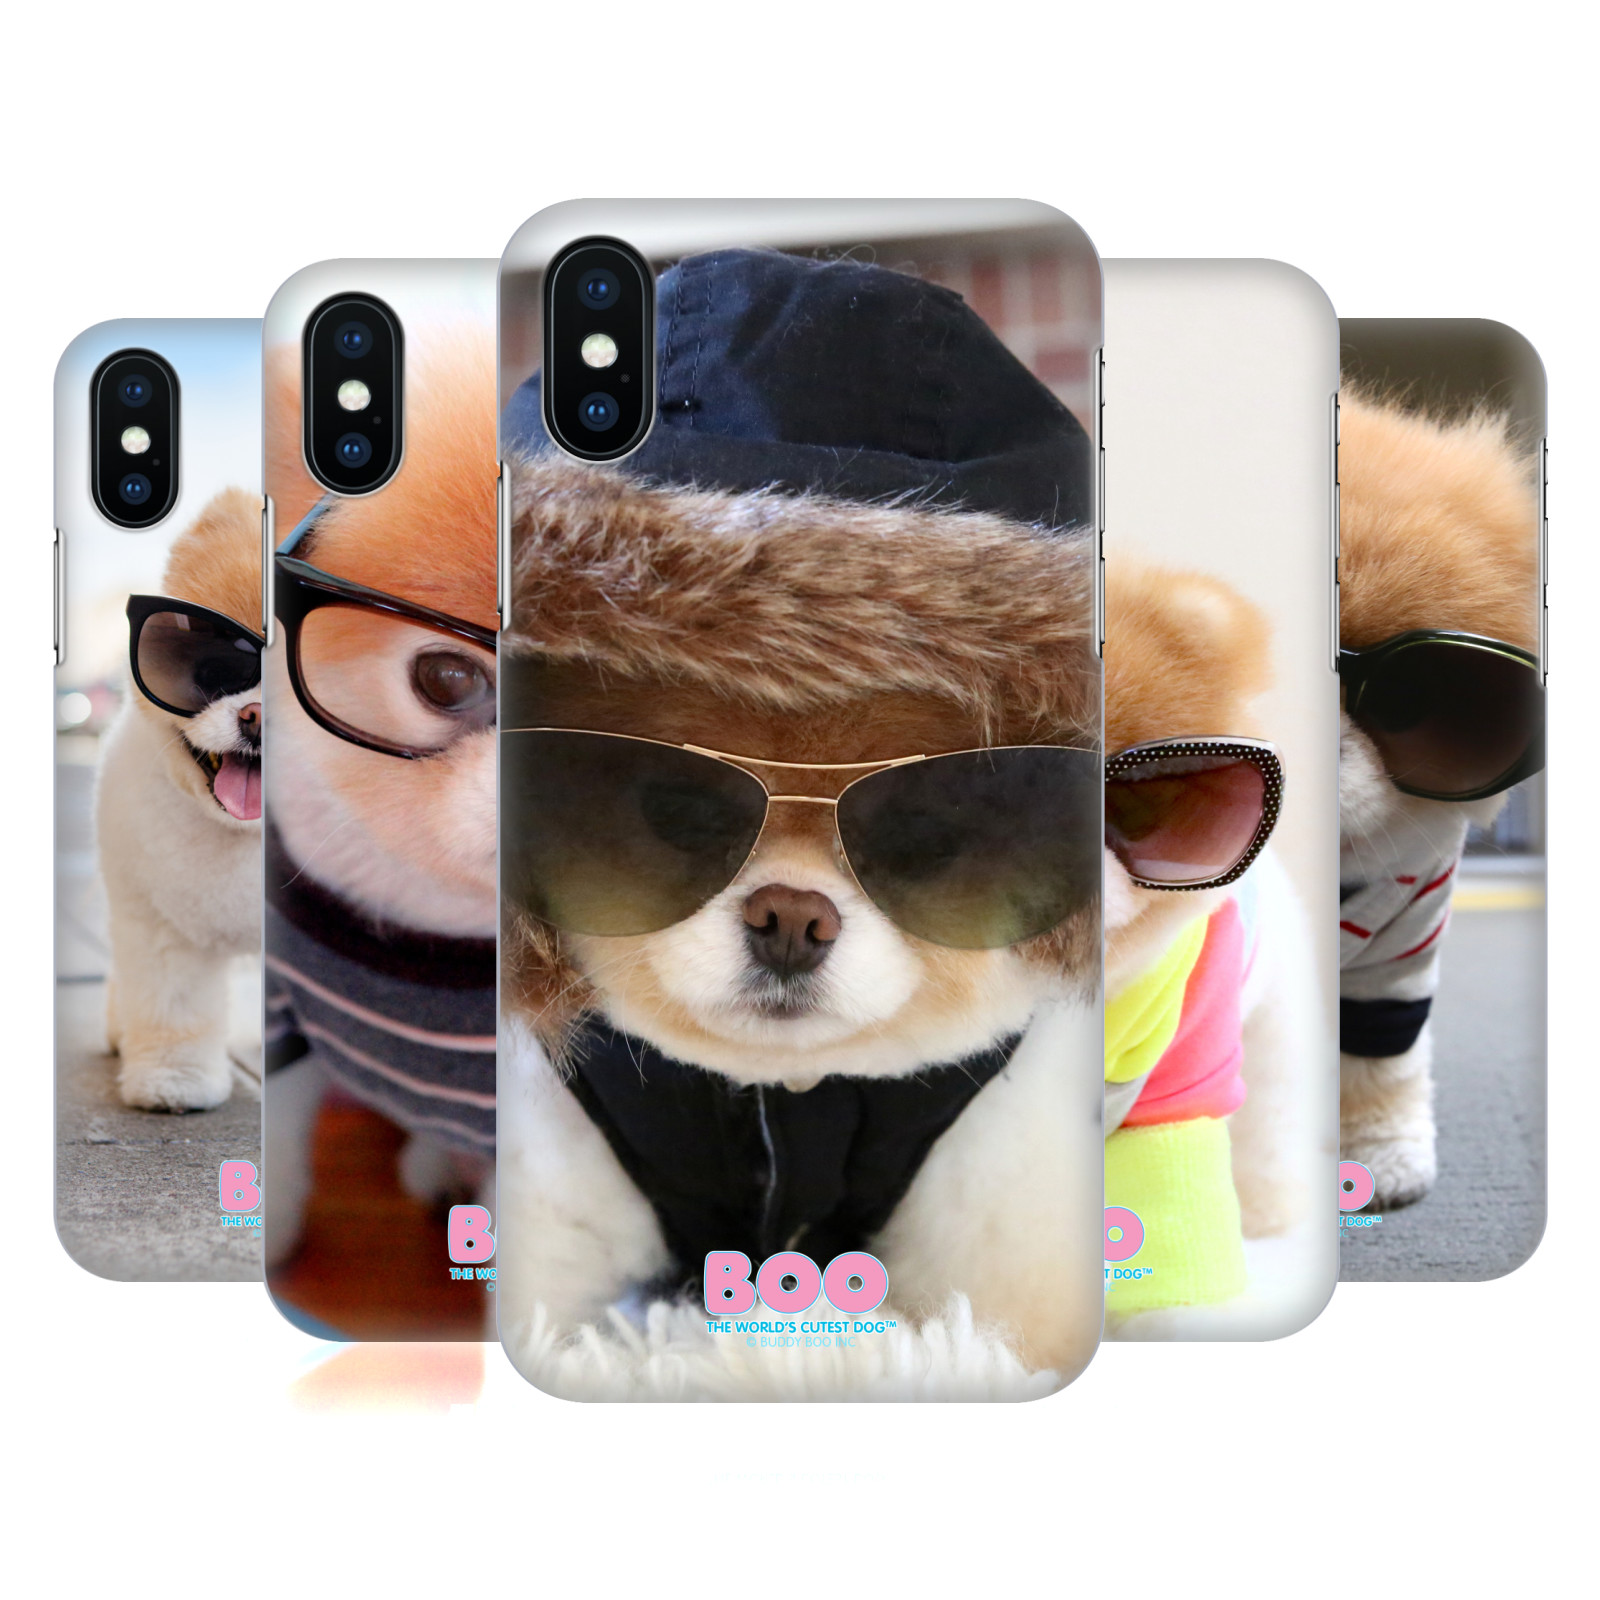 Boo-The World's Cutest Dog Sunglasses